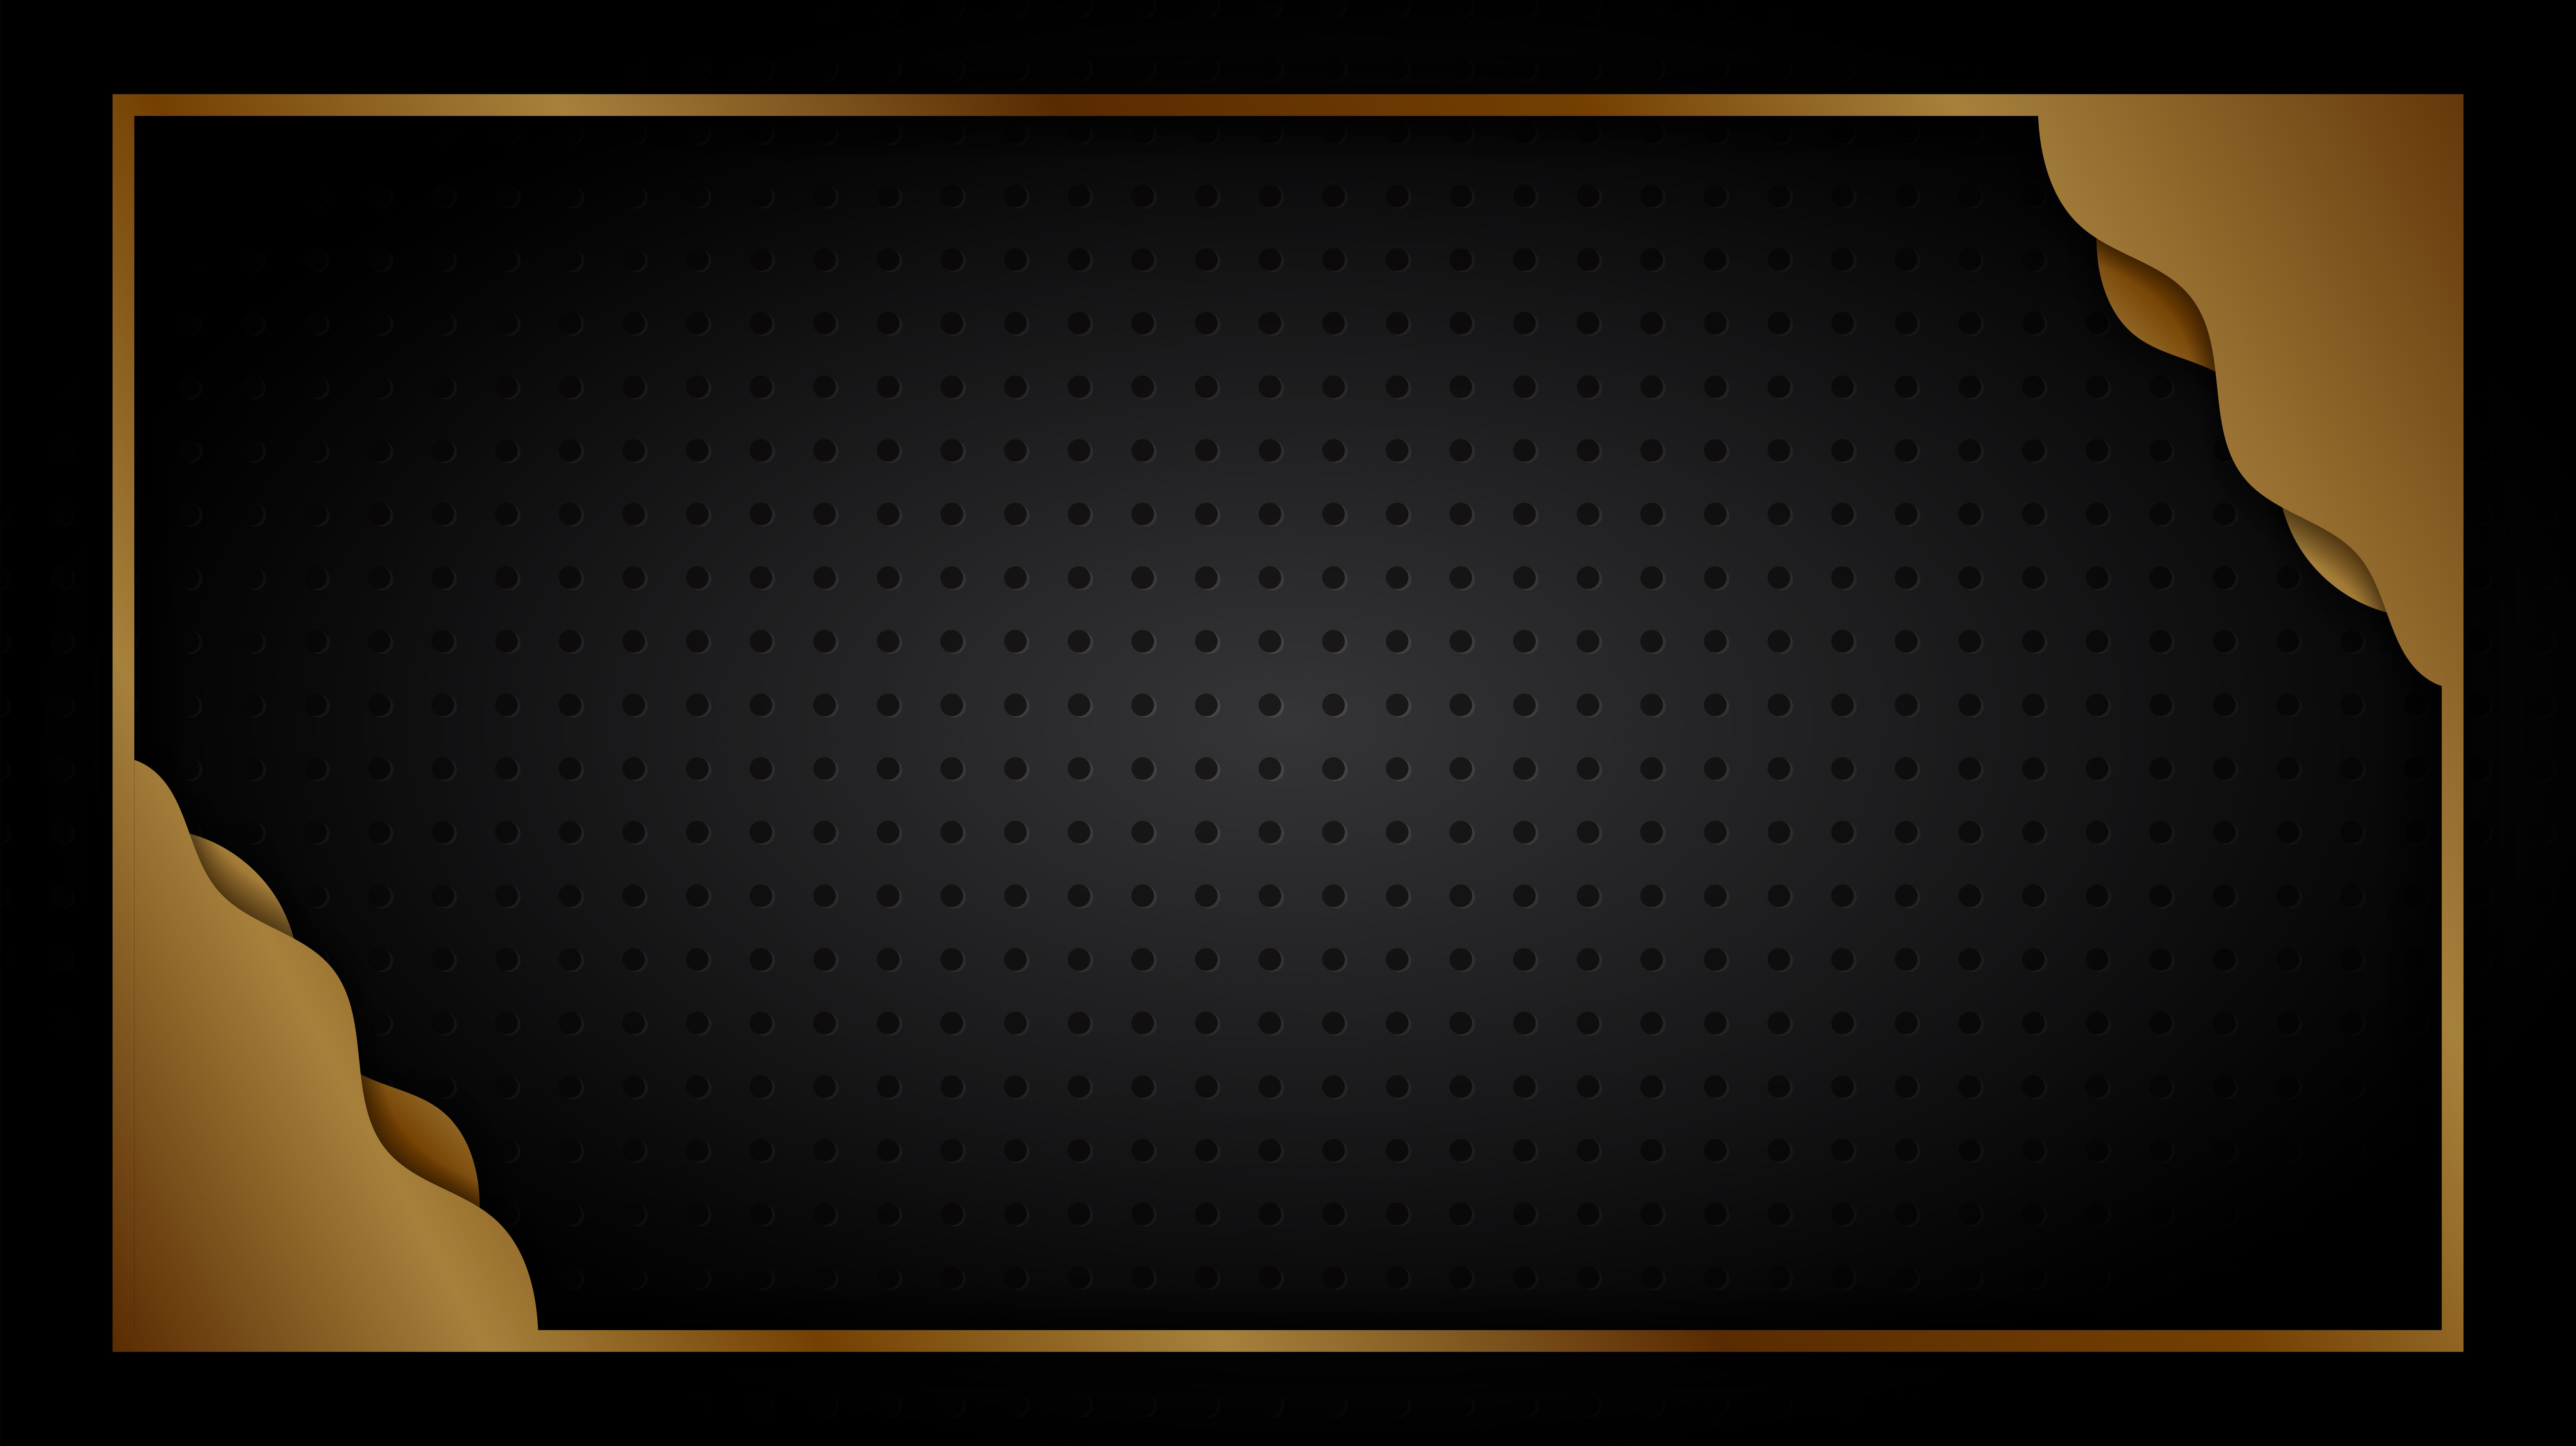 Black And Gold Background Abstract Geometric Shapes Luxury Design Wallpaper Realistic Layer Me Gold Background Powerpoint Background Design Creative Background